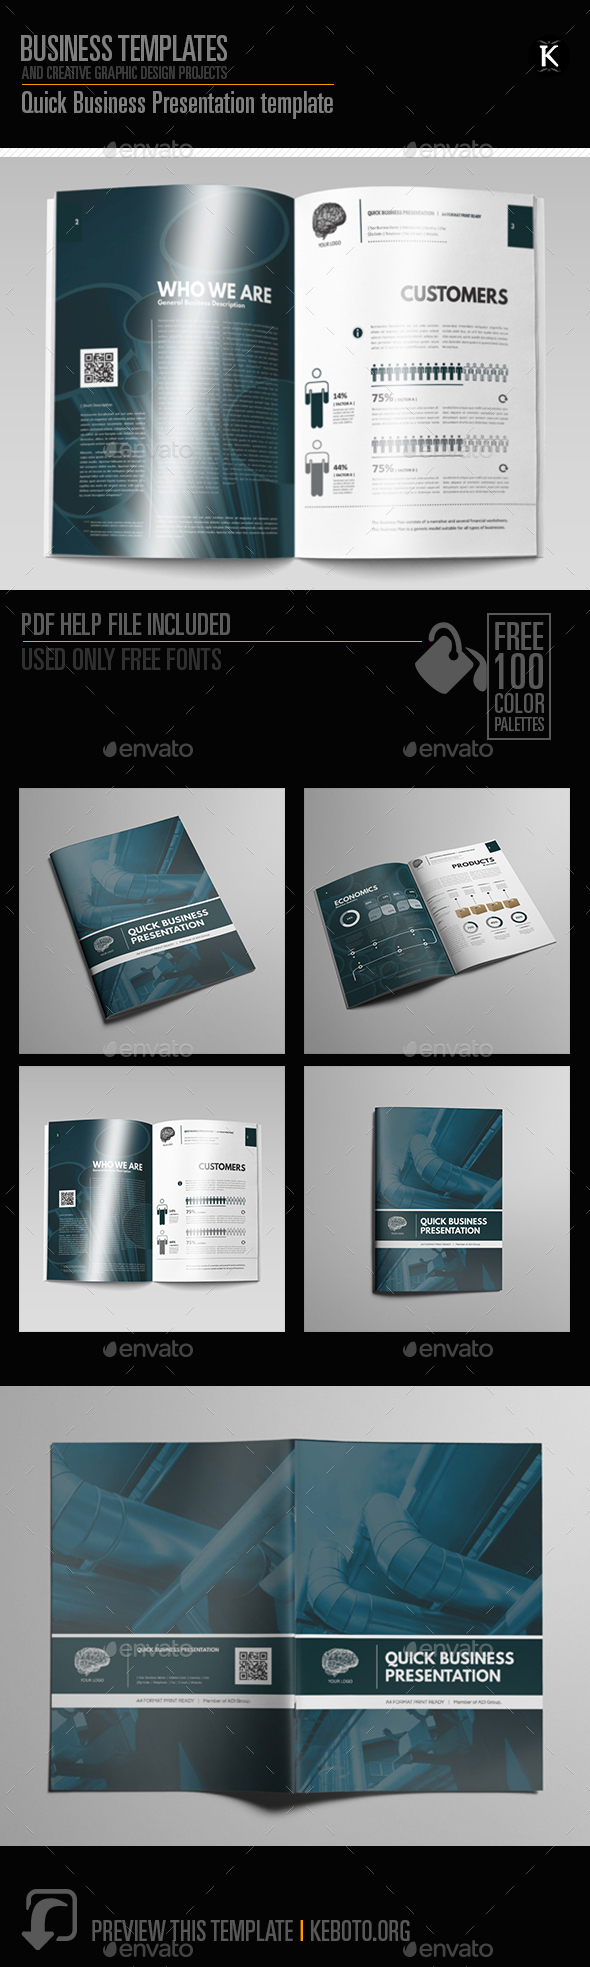 Quick Business Presentation Template - Miscellaneous Print Templates